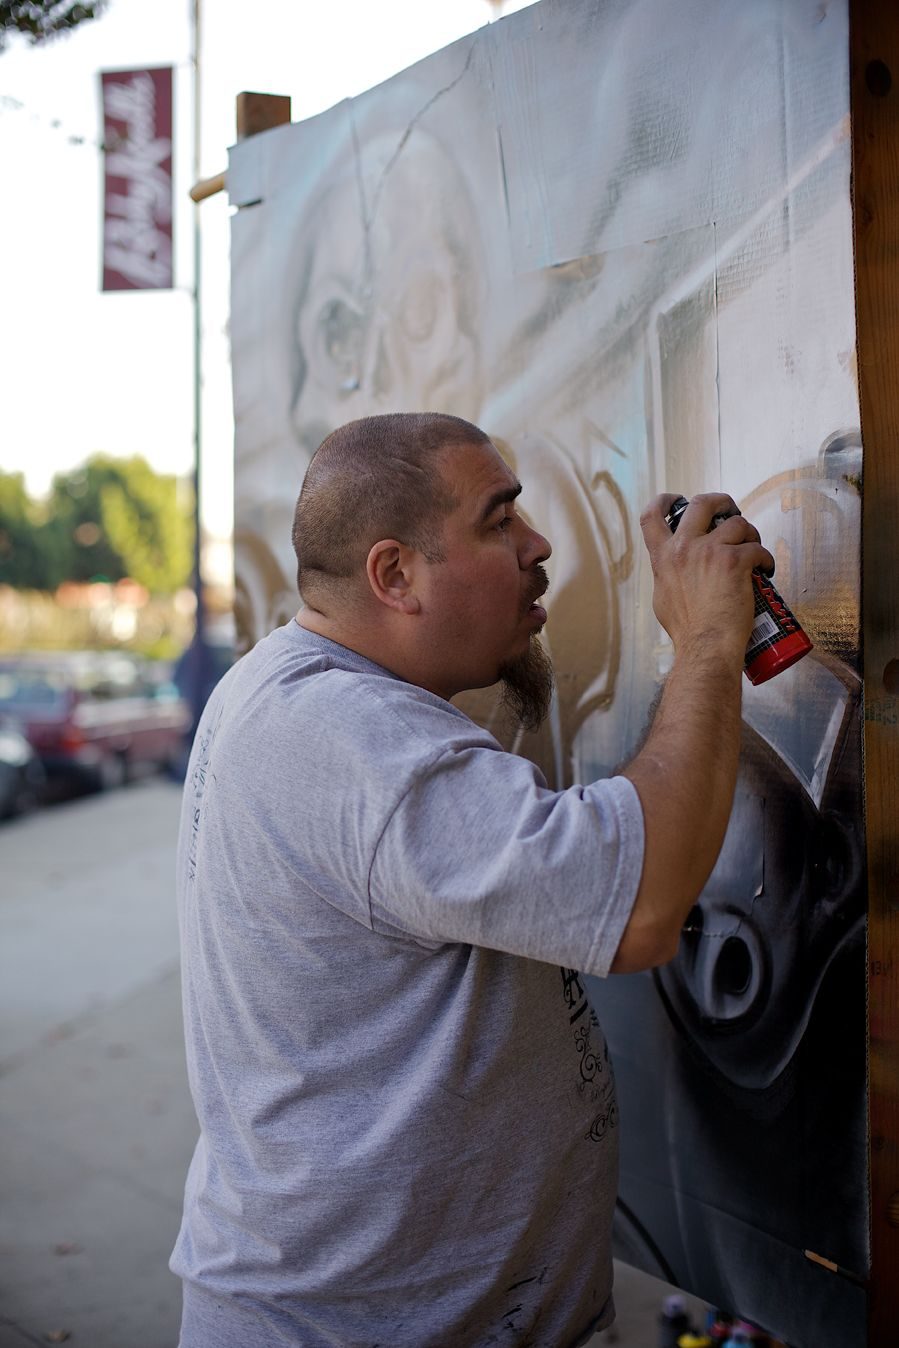 Eric &quot;Mural&quot; Martinez, a driving force behind BlackBook Sessions, demonstrates his skills during the organizations latest art event and contest, held recently in Long Beach, Calif.